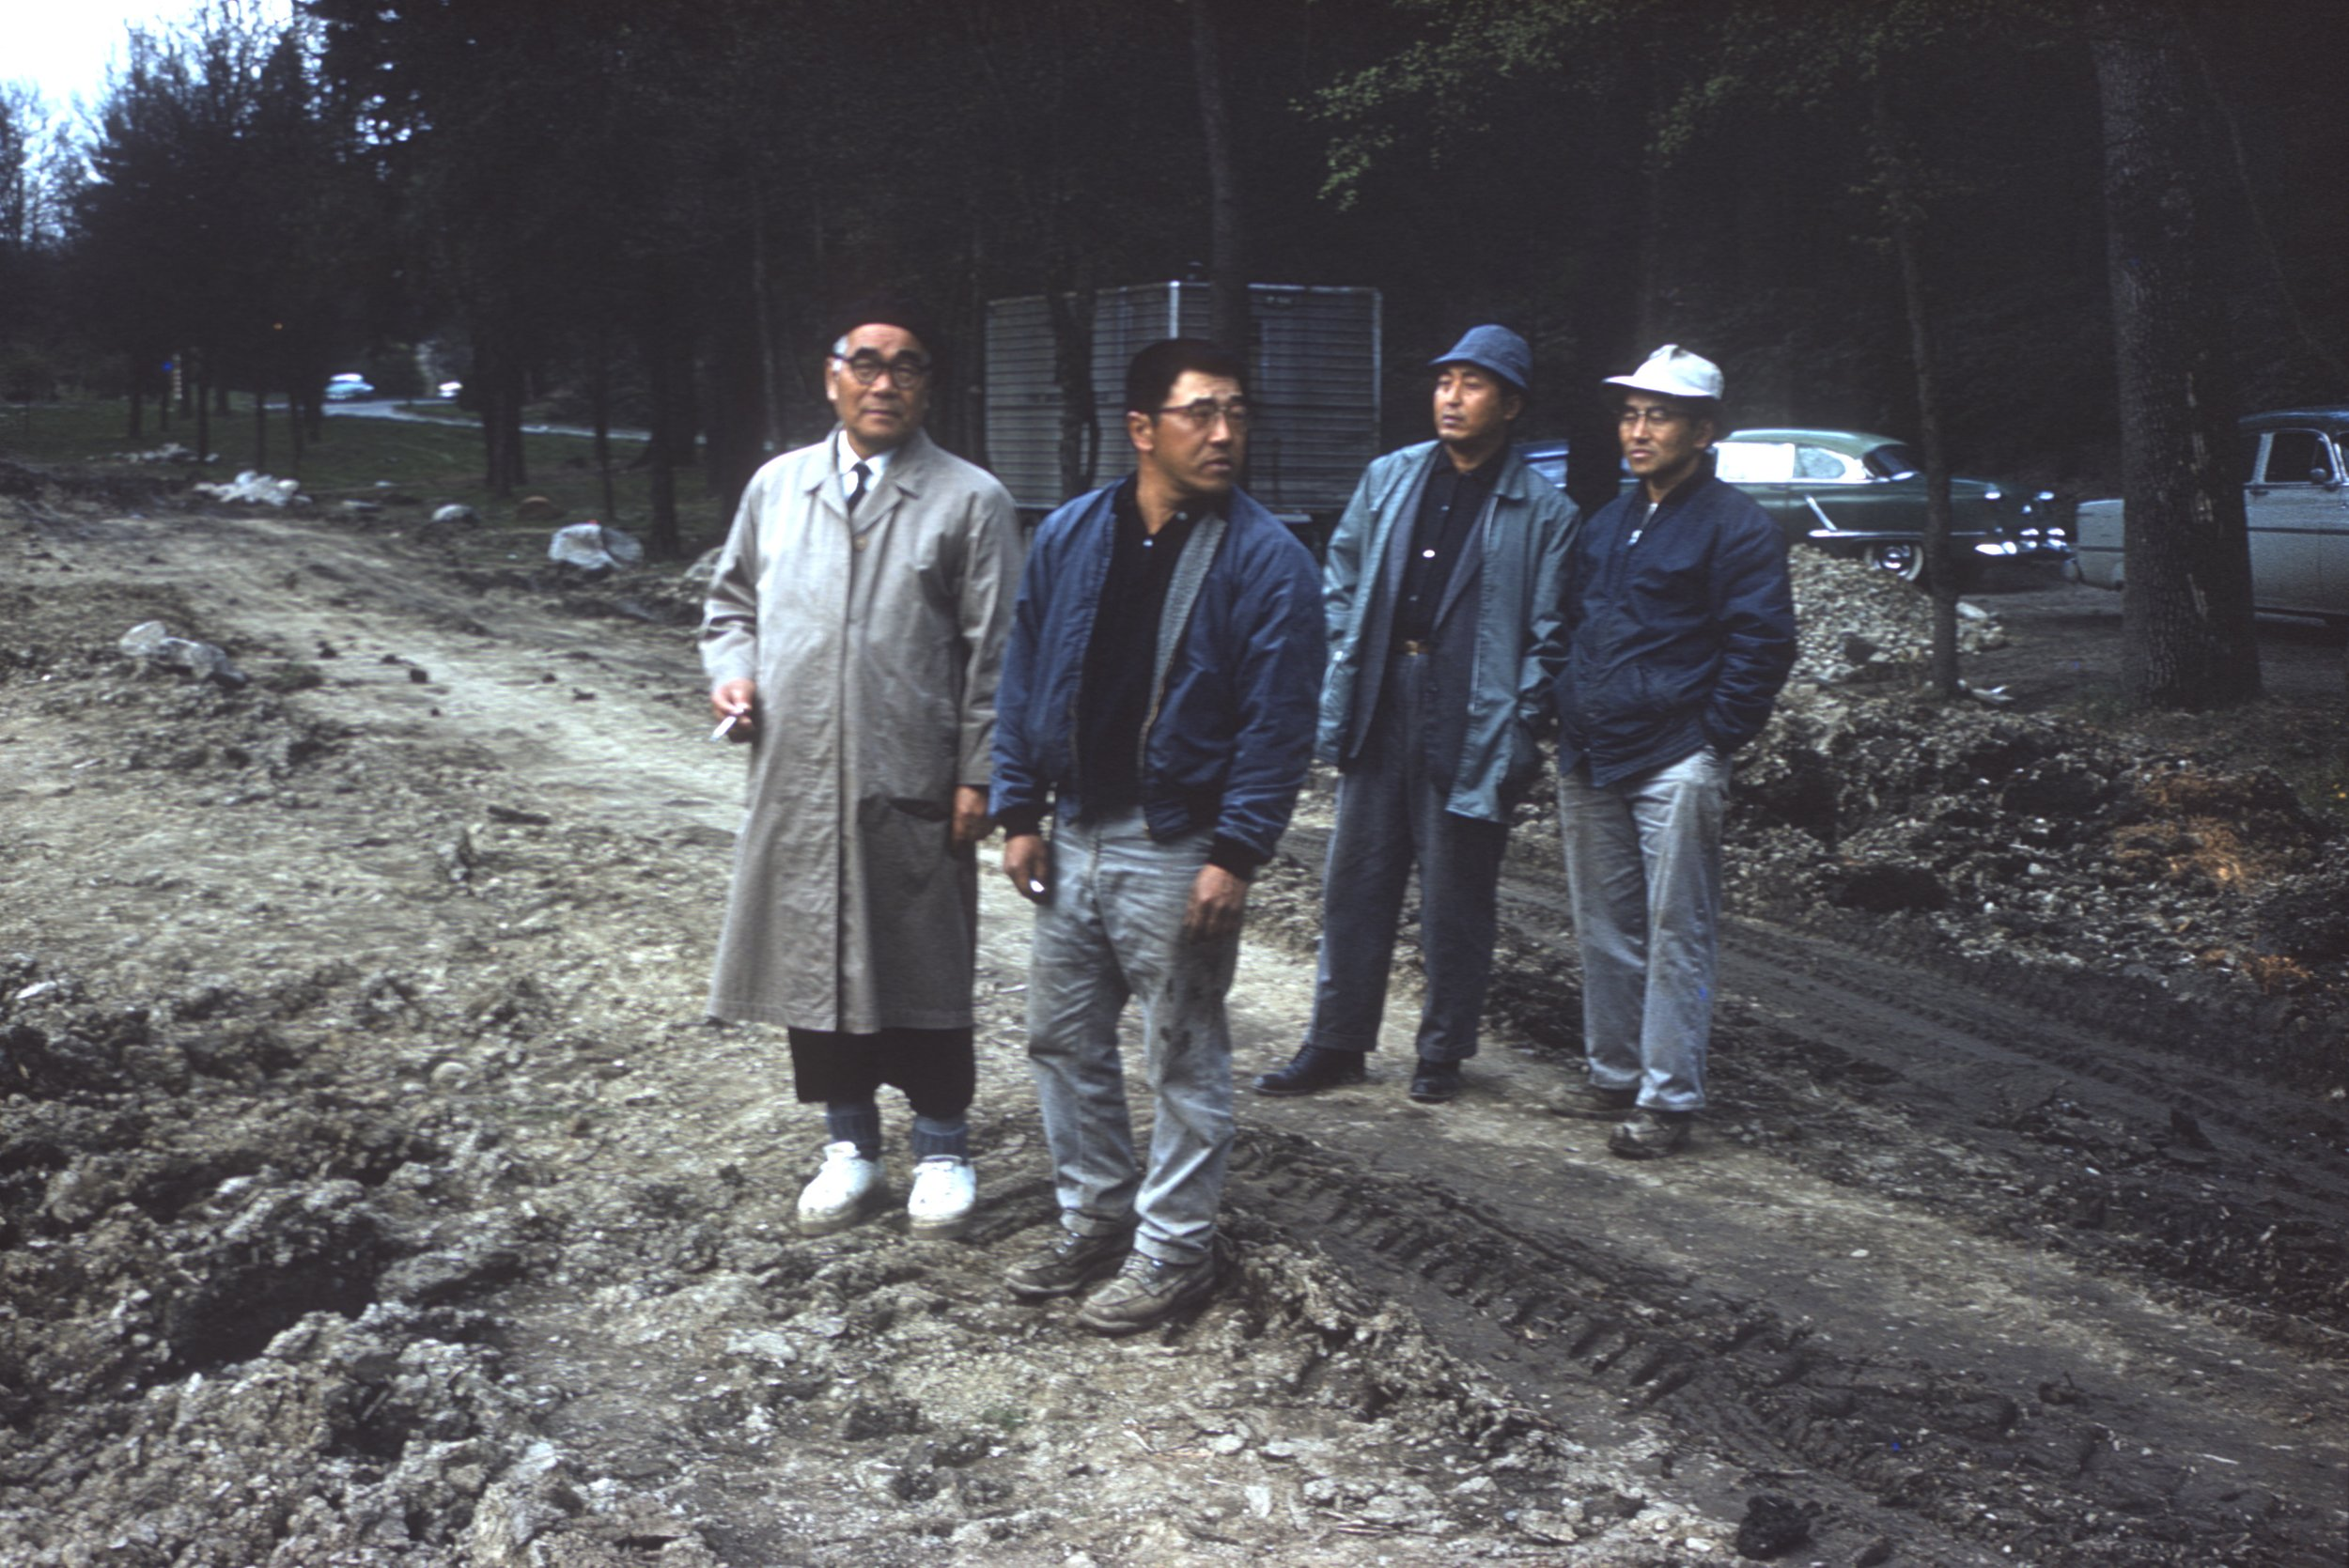 A rare color photograph of Juki Iida (left) with Kaz (Kei) Ishimitsu, Richard (Dick) Yamasaki, and William (Bill) Yorozu, taken during the construction of the Seattle Japanese Garden from 1959 to 1960 (photo undated).